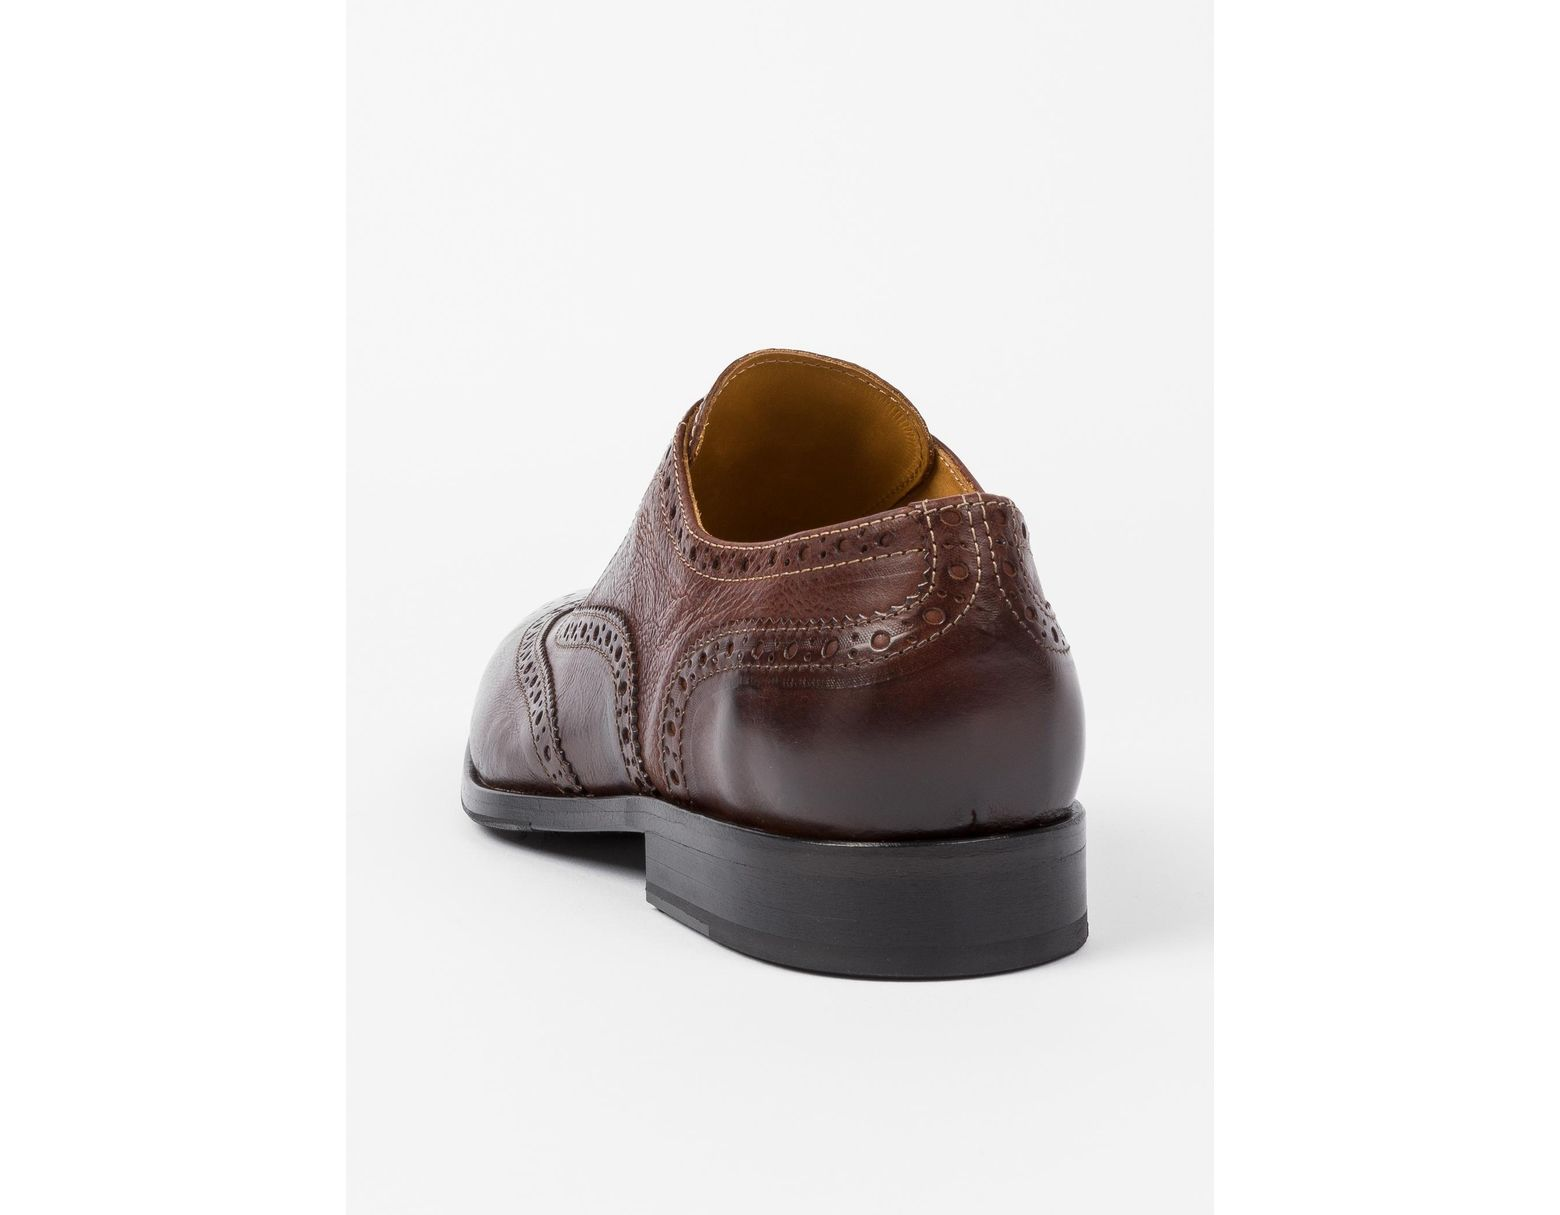 b4449d924c326 Paul Smith Chocolate Brown Calf Leather 'marti' Brogues in Brown for Men -  Lyst